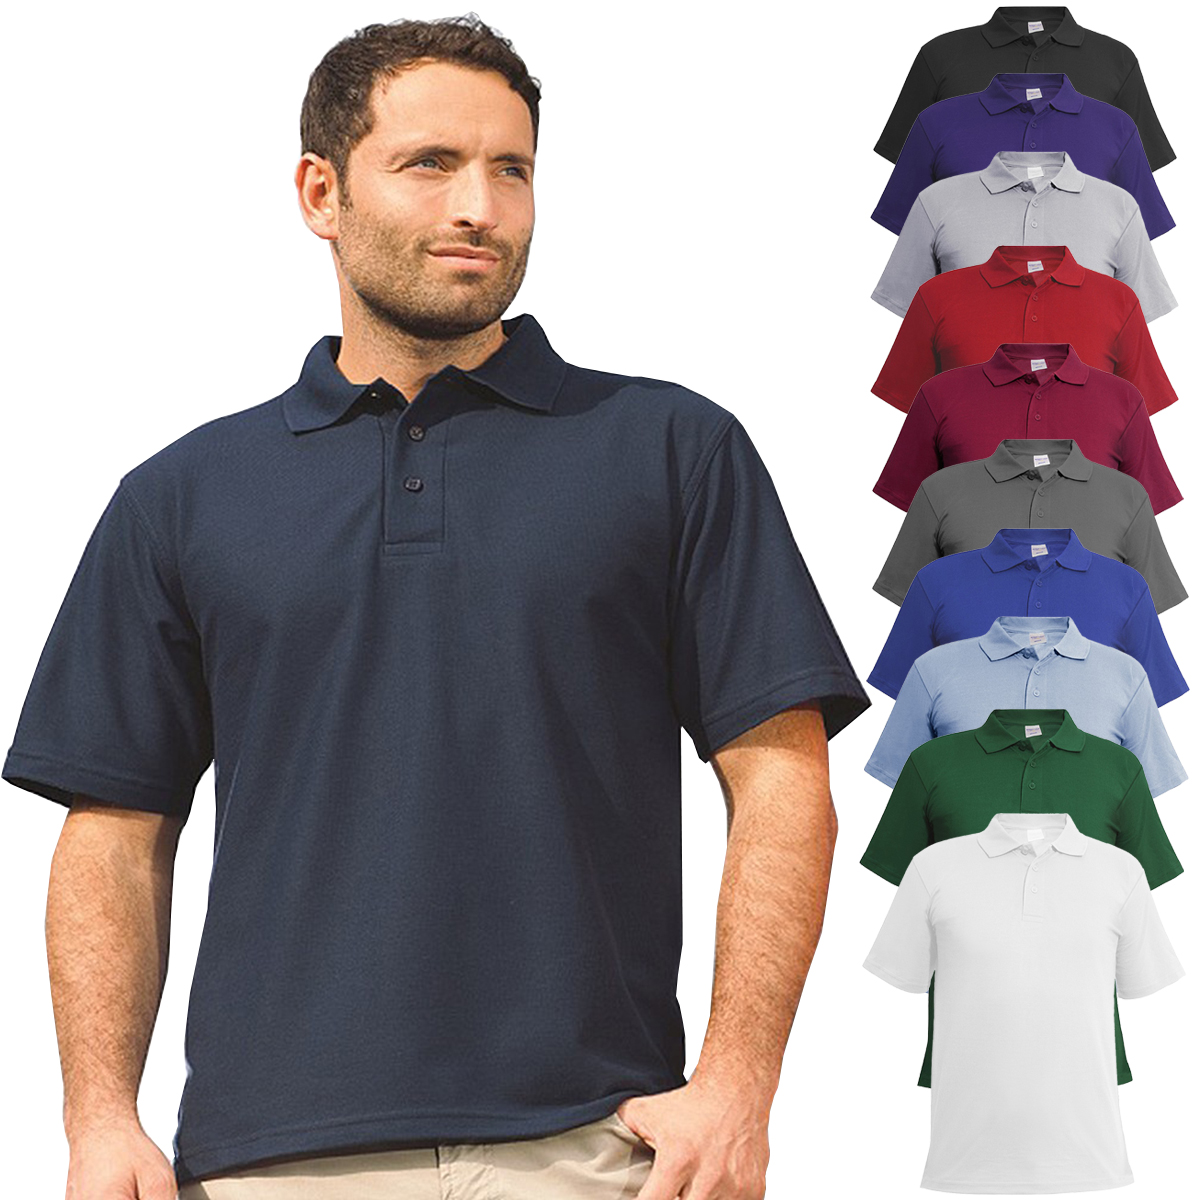 Details about Mens Classic Polo Top Plus Size T-Shirt Plain Shirt Big And  Tall Short Sleeve